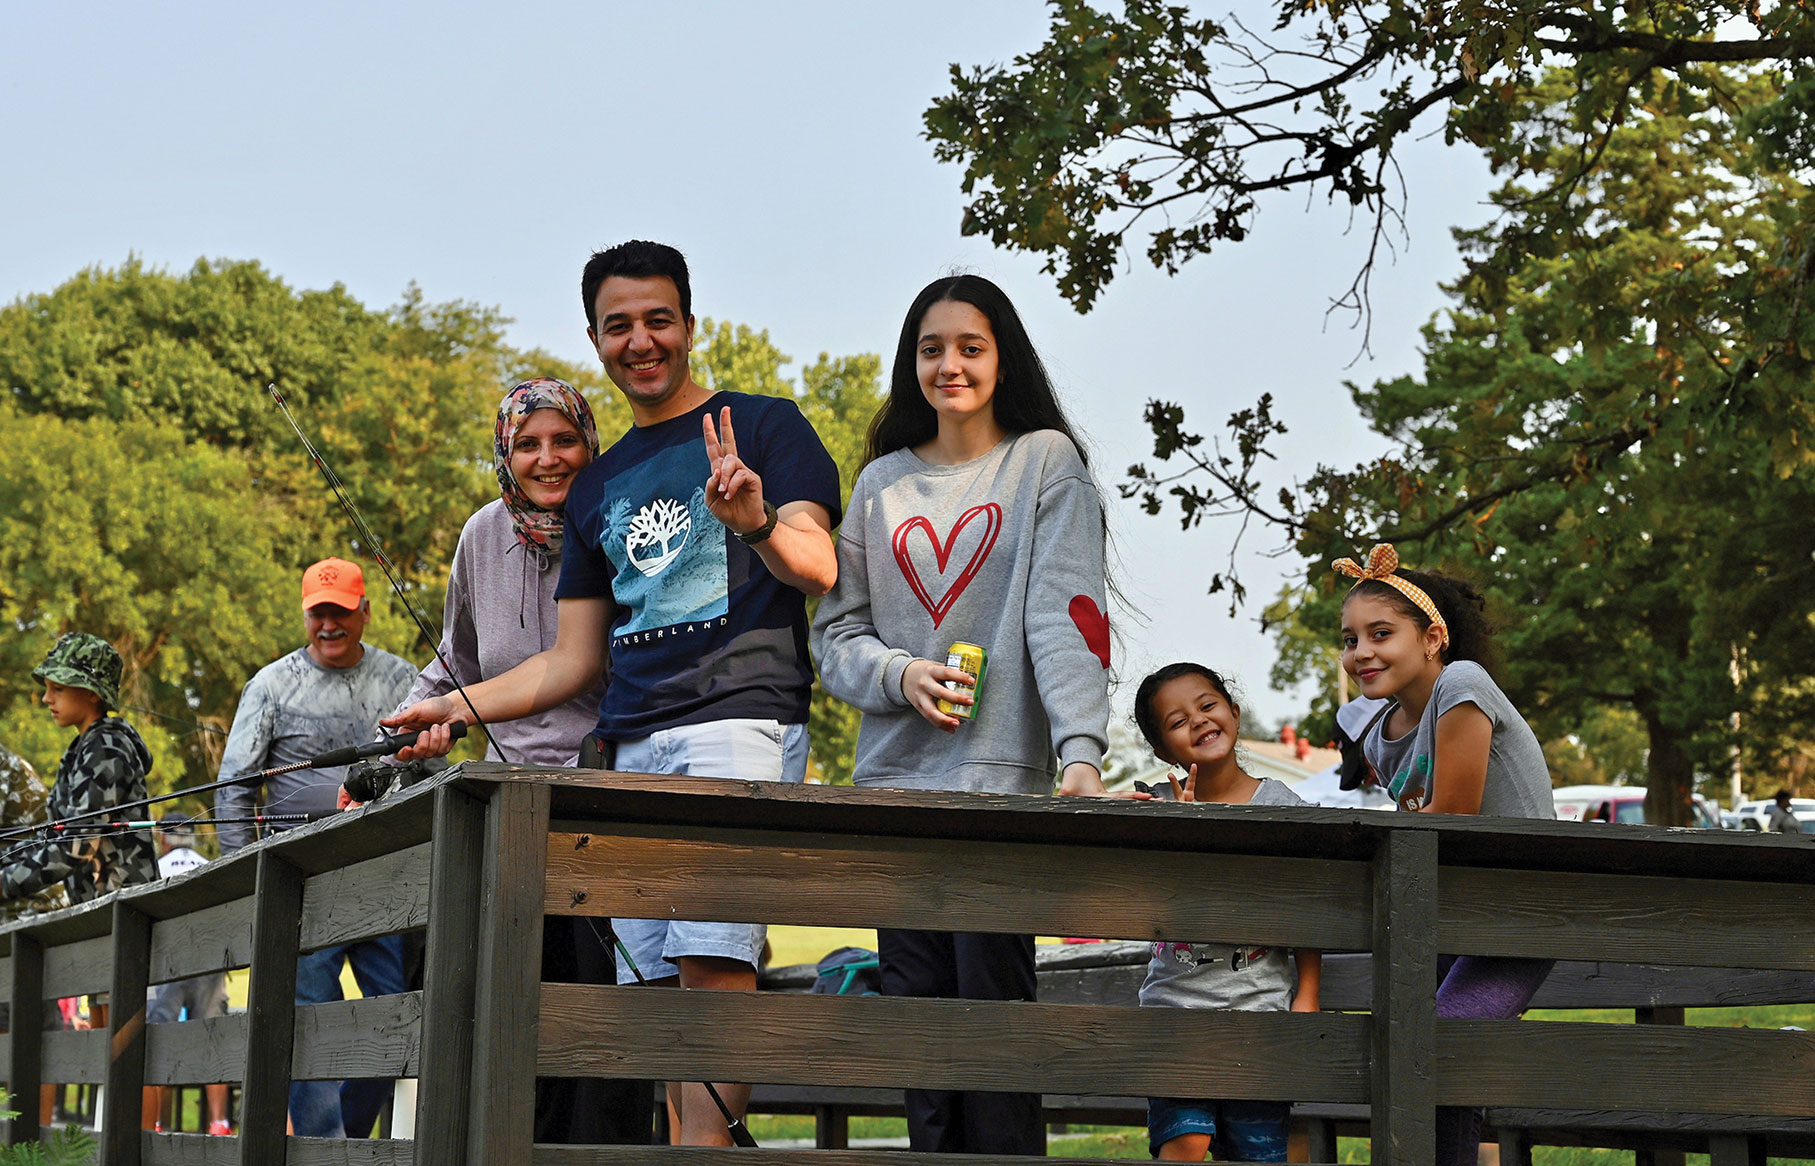 Lt. Col. Ahmed Etman along with his wife and three daughters fish from the dock at Merritt Lake, Fort Leavenworth, during the International Family Fishing Derby on Sept. 11. Etman is an international military student from Egypt enrolled in the Command and General Staff Officers Course Class of 2022.